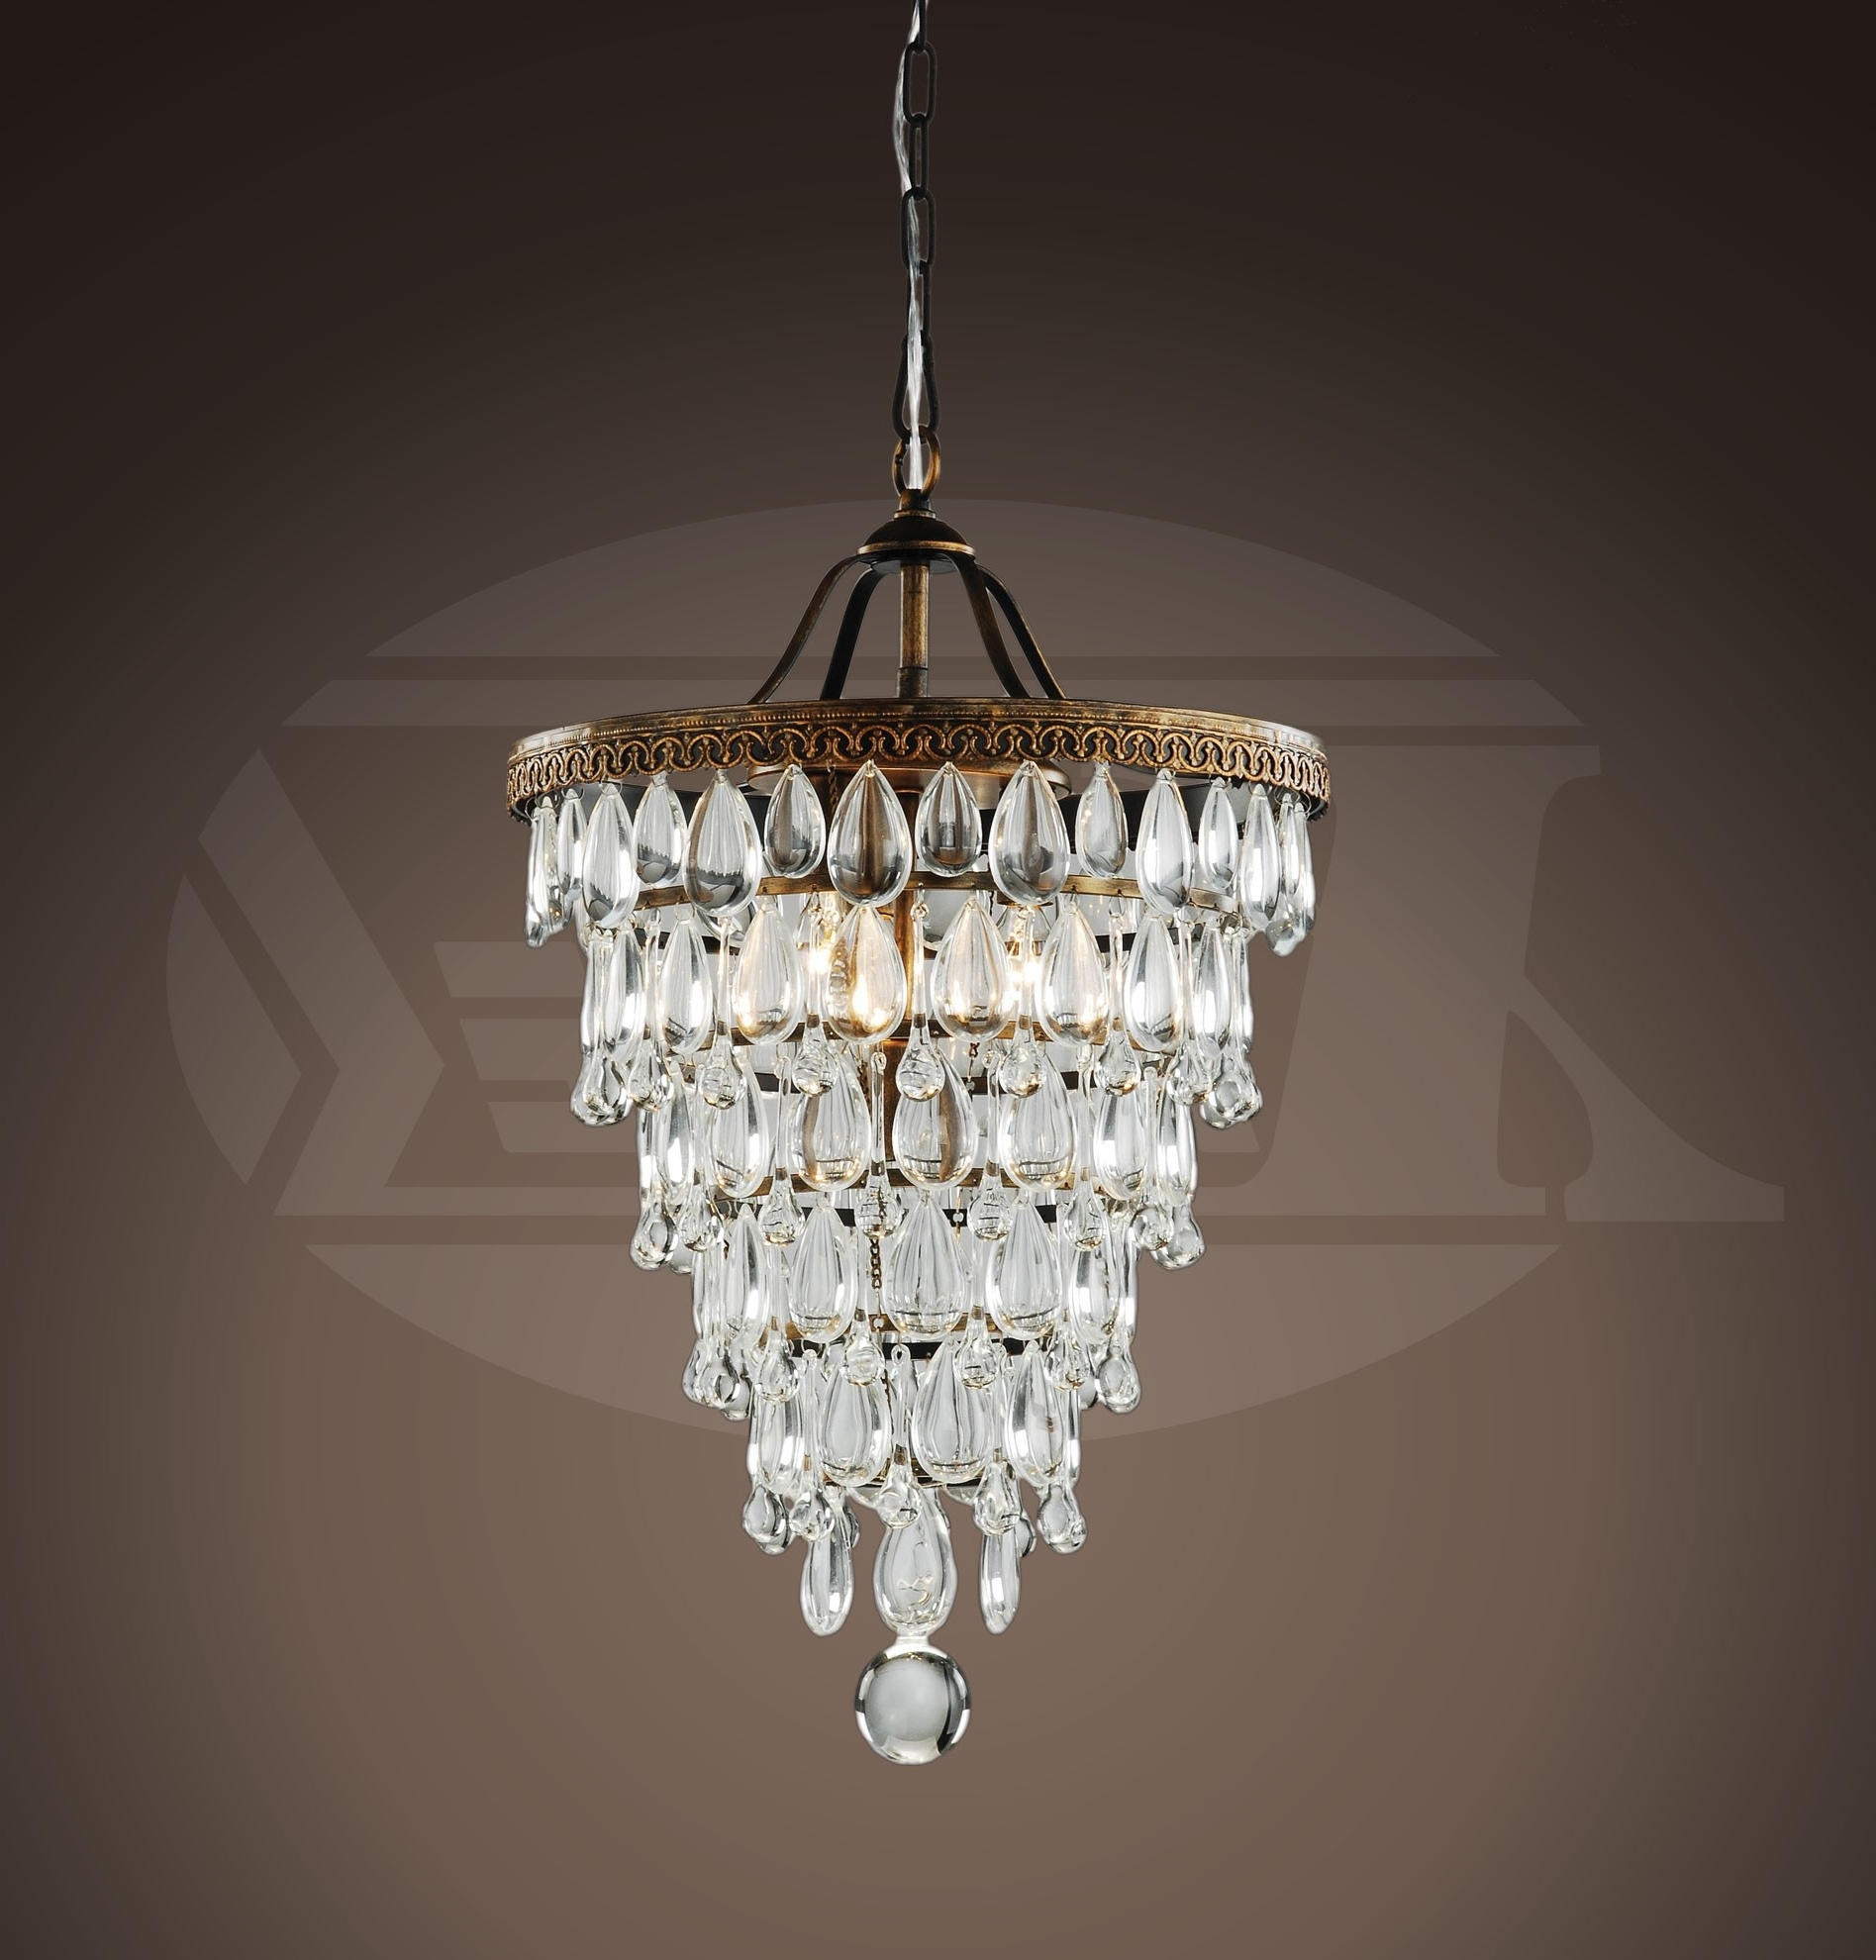 Annabelle Crystal Cone Shape 4 Light Antique Copper Glass Drop Throughout Most Current Copper Chandelier (View 19 of 20)